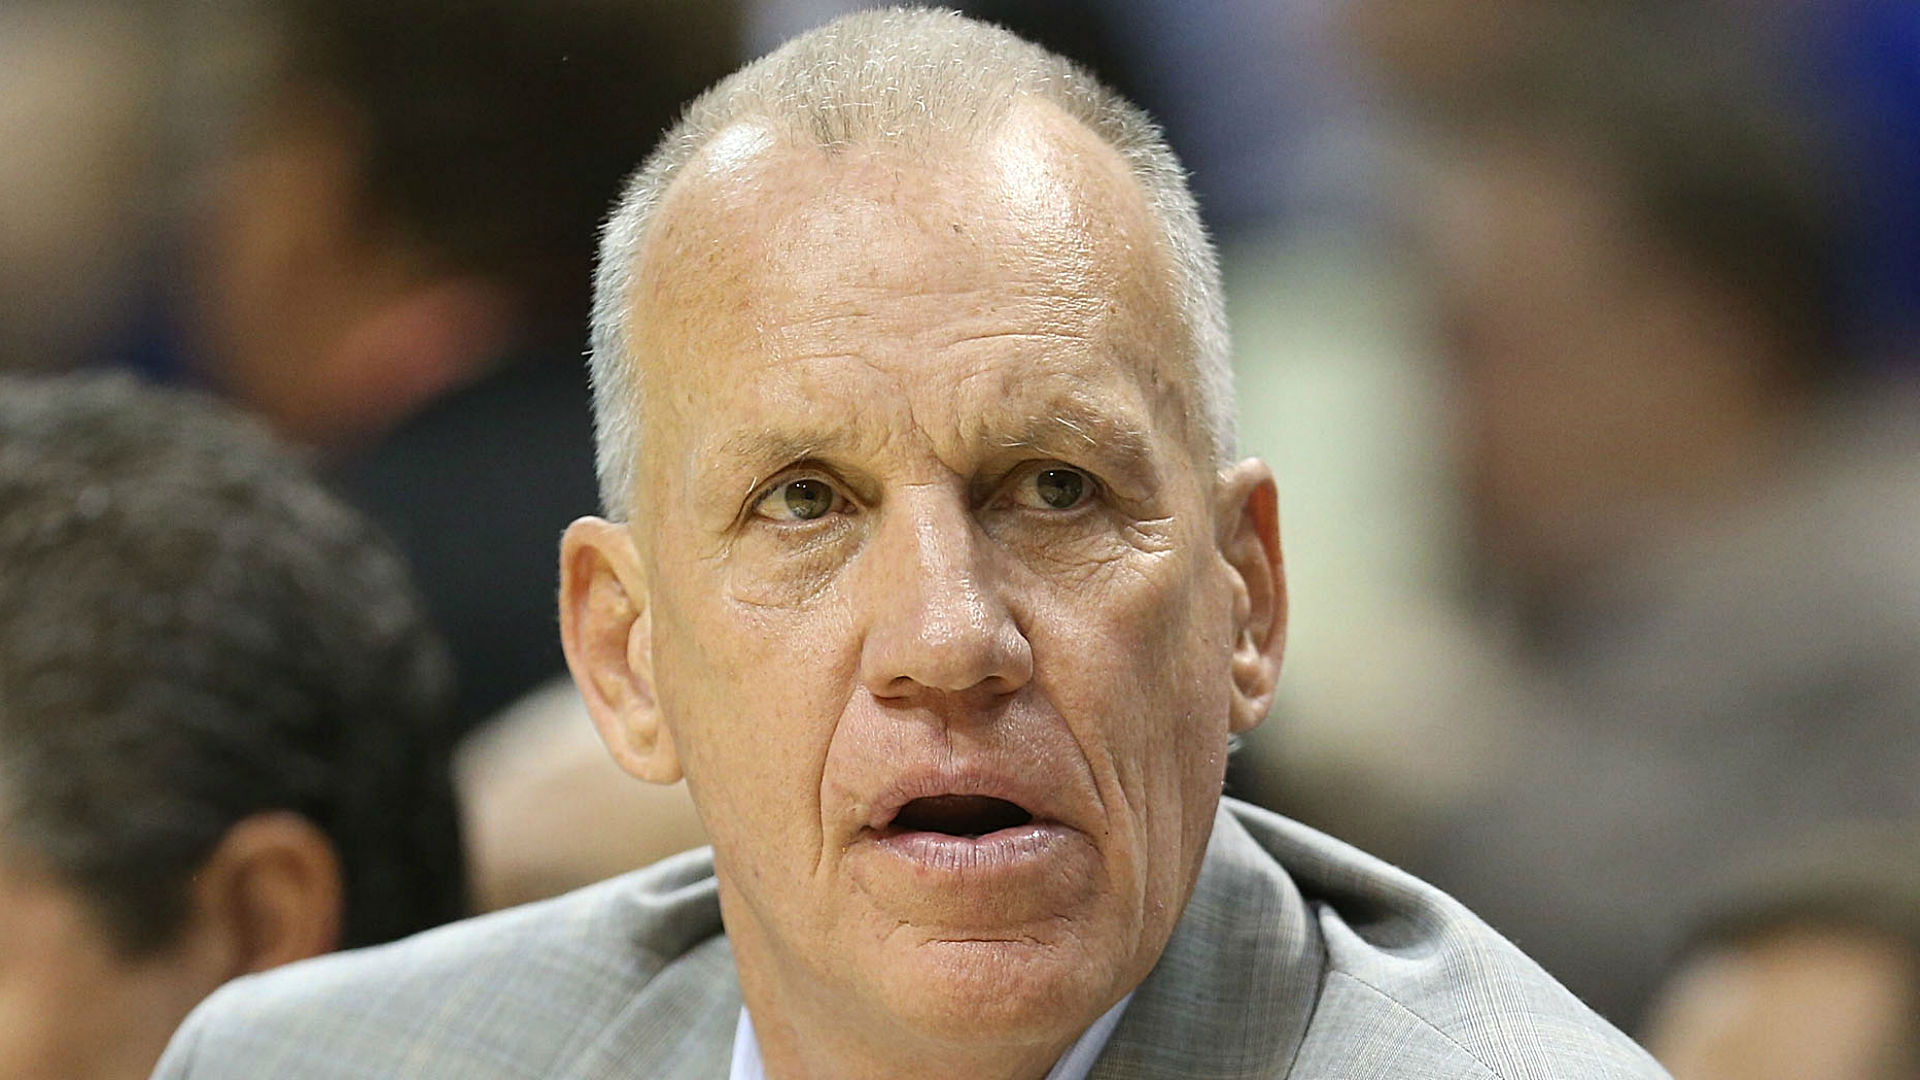 Doug Collins stricken terrified face captures Day 1 of March